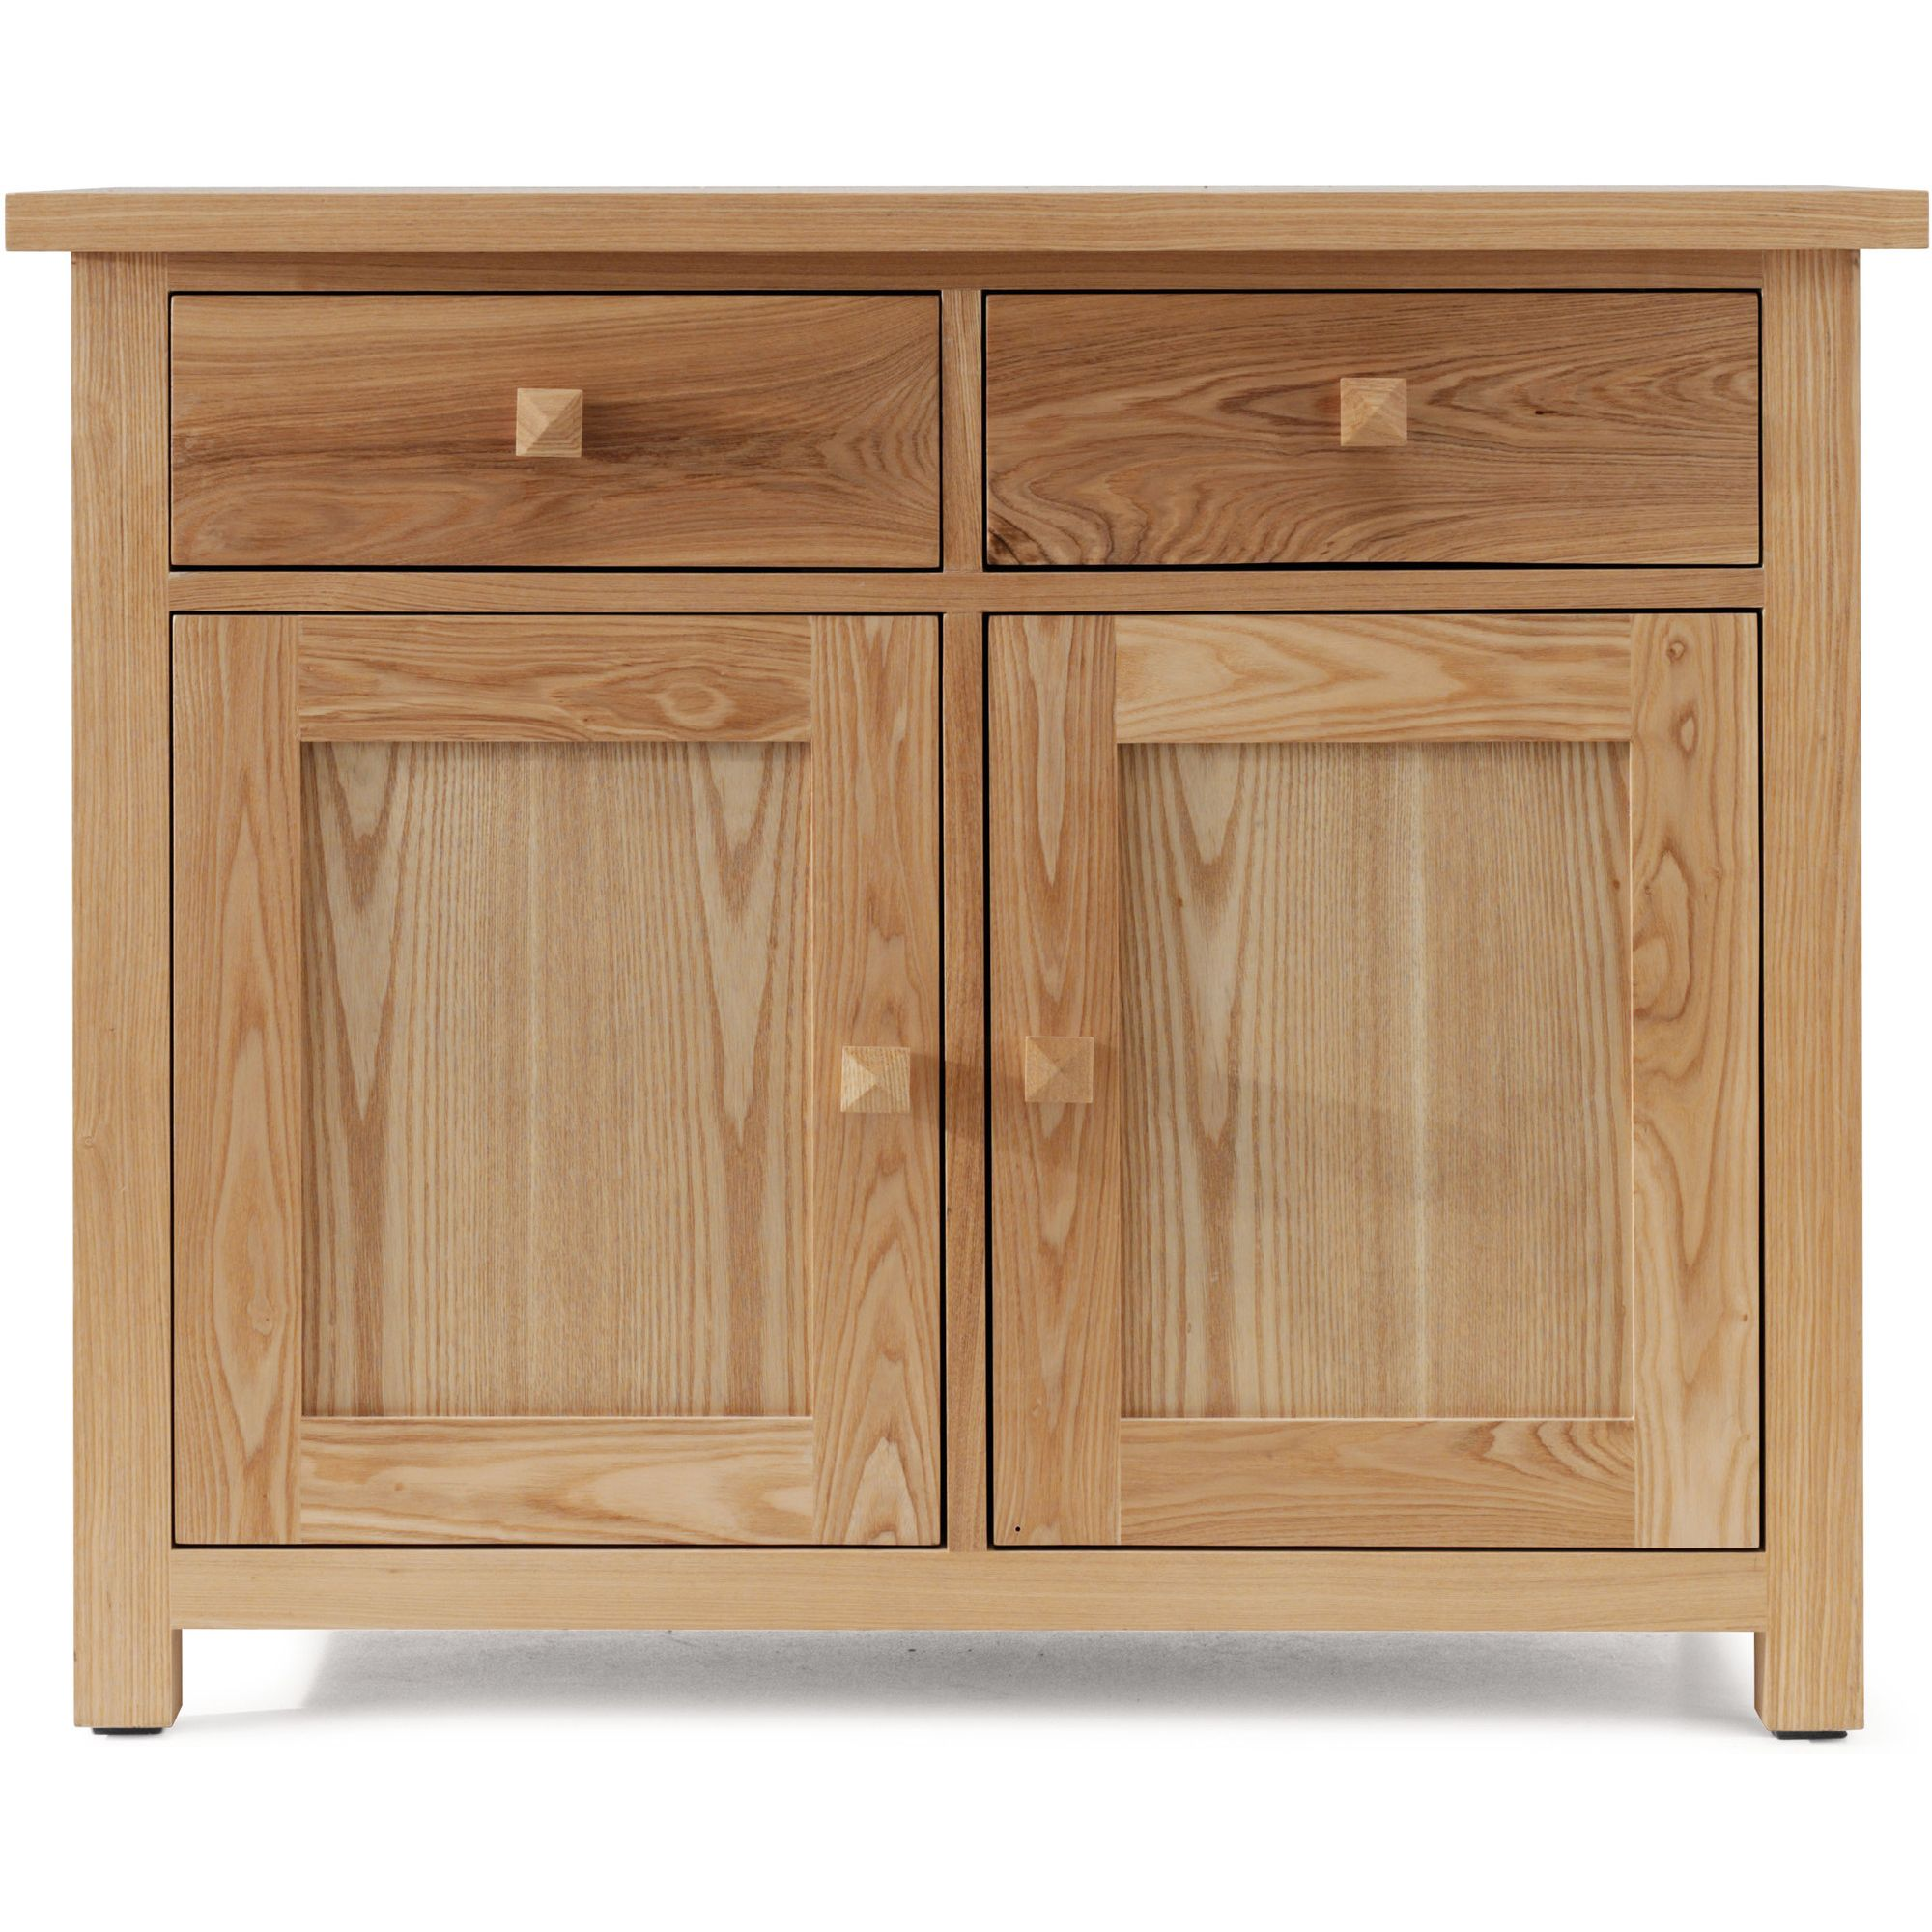 Originals Portland Small Sideboard at Tesco Direct